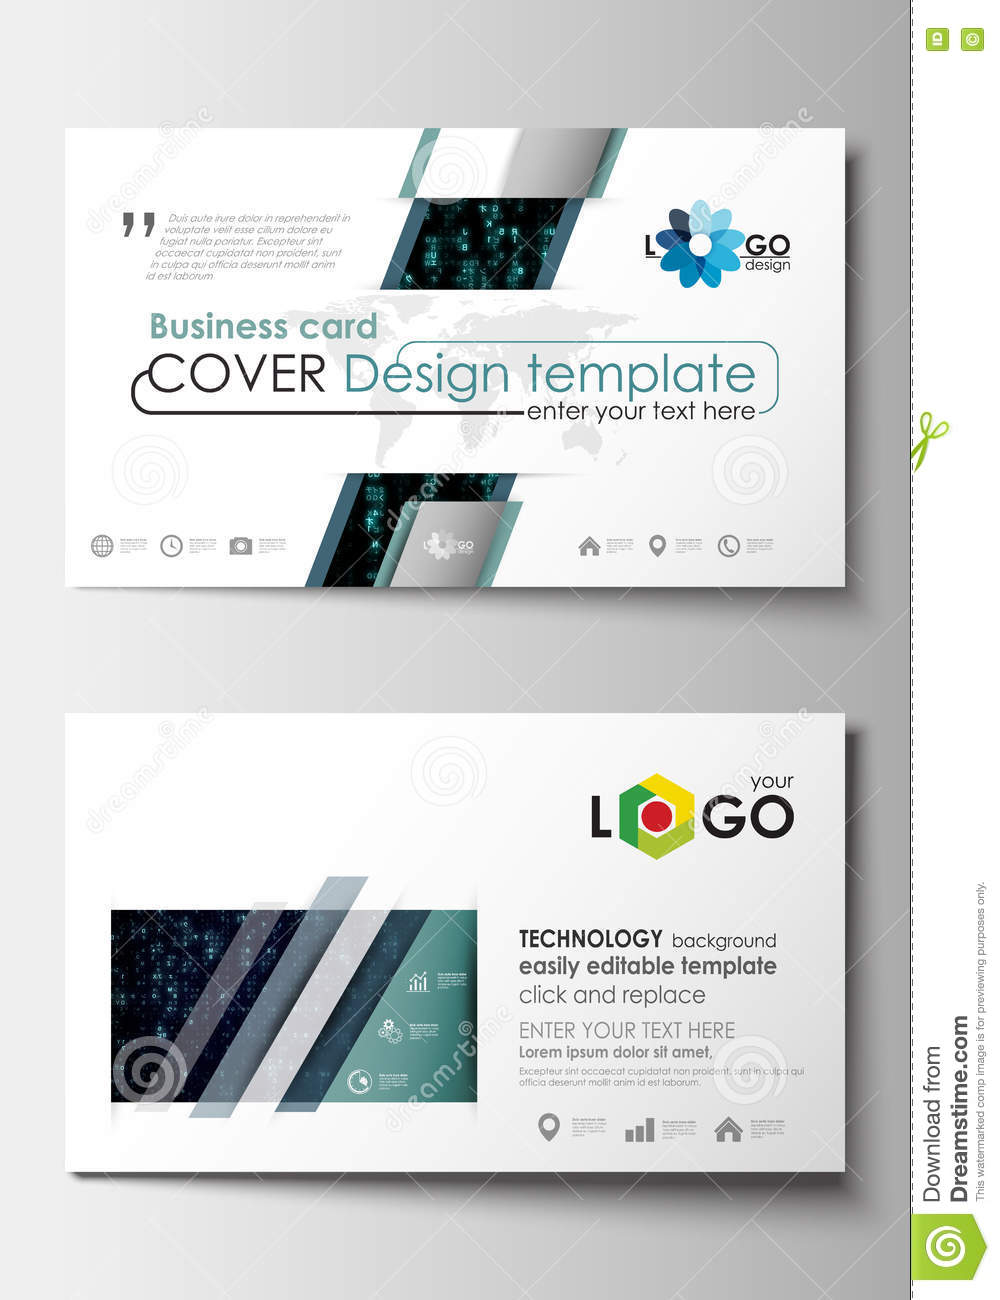 Business card templates cover design template easy editable blank download business card templates cover design template easy editable blank flat layout wajeb